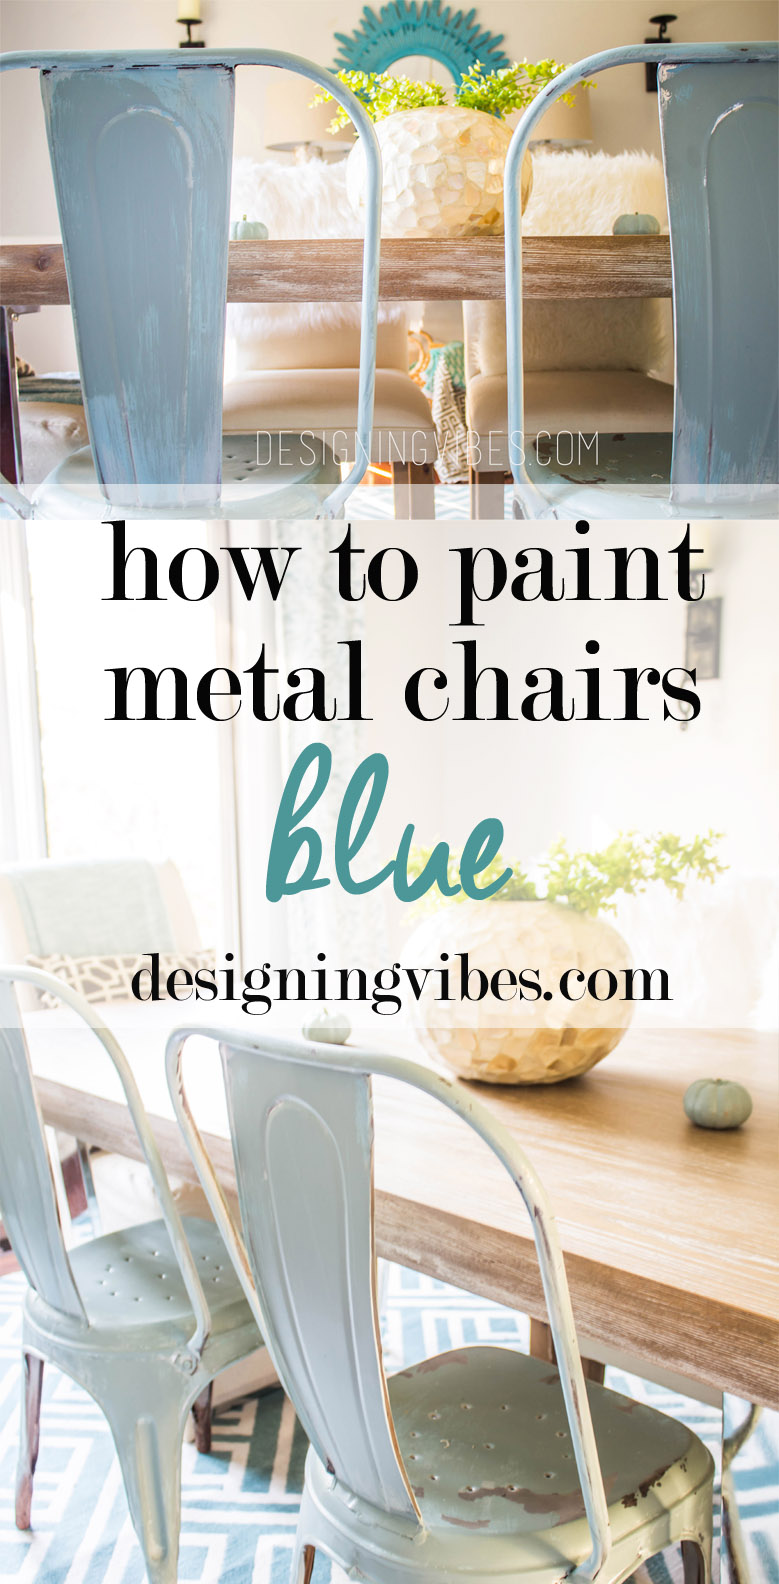 How To Paint Metal Chairs Blue Metal Chairs